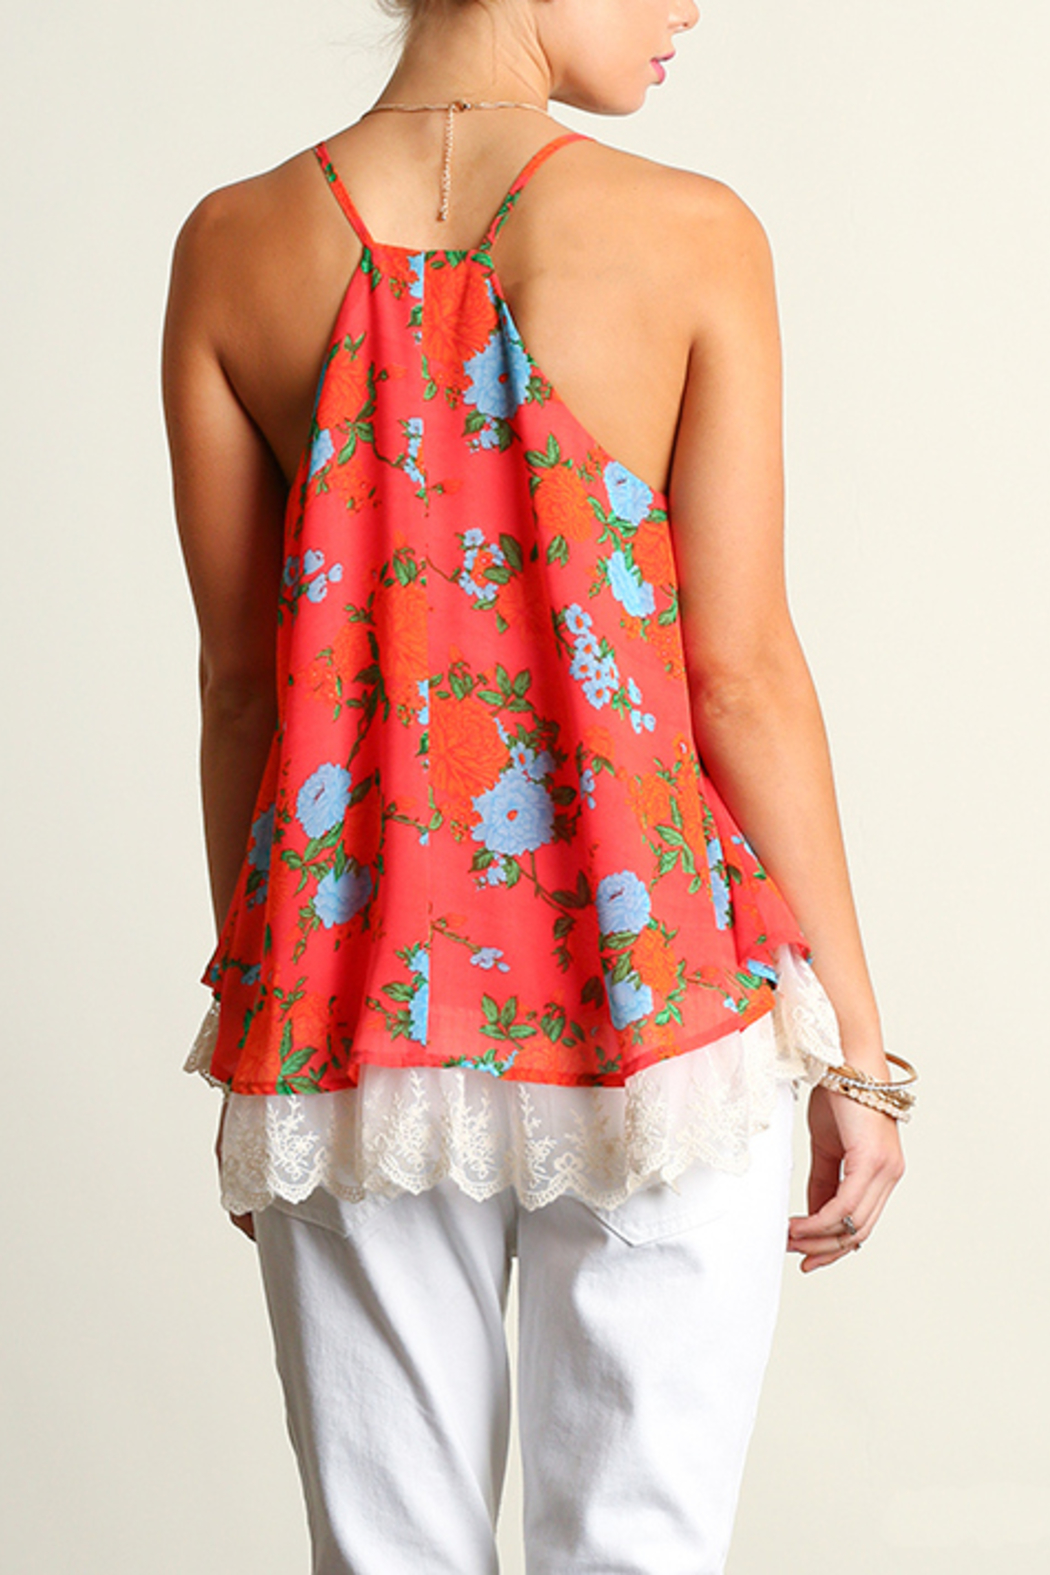 Umgee USA Sleeveless Print Top - Back Cropped Image